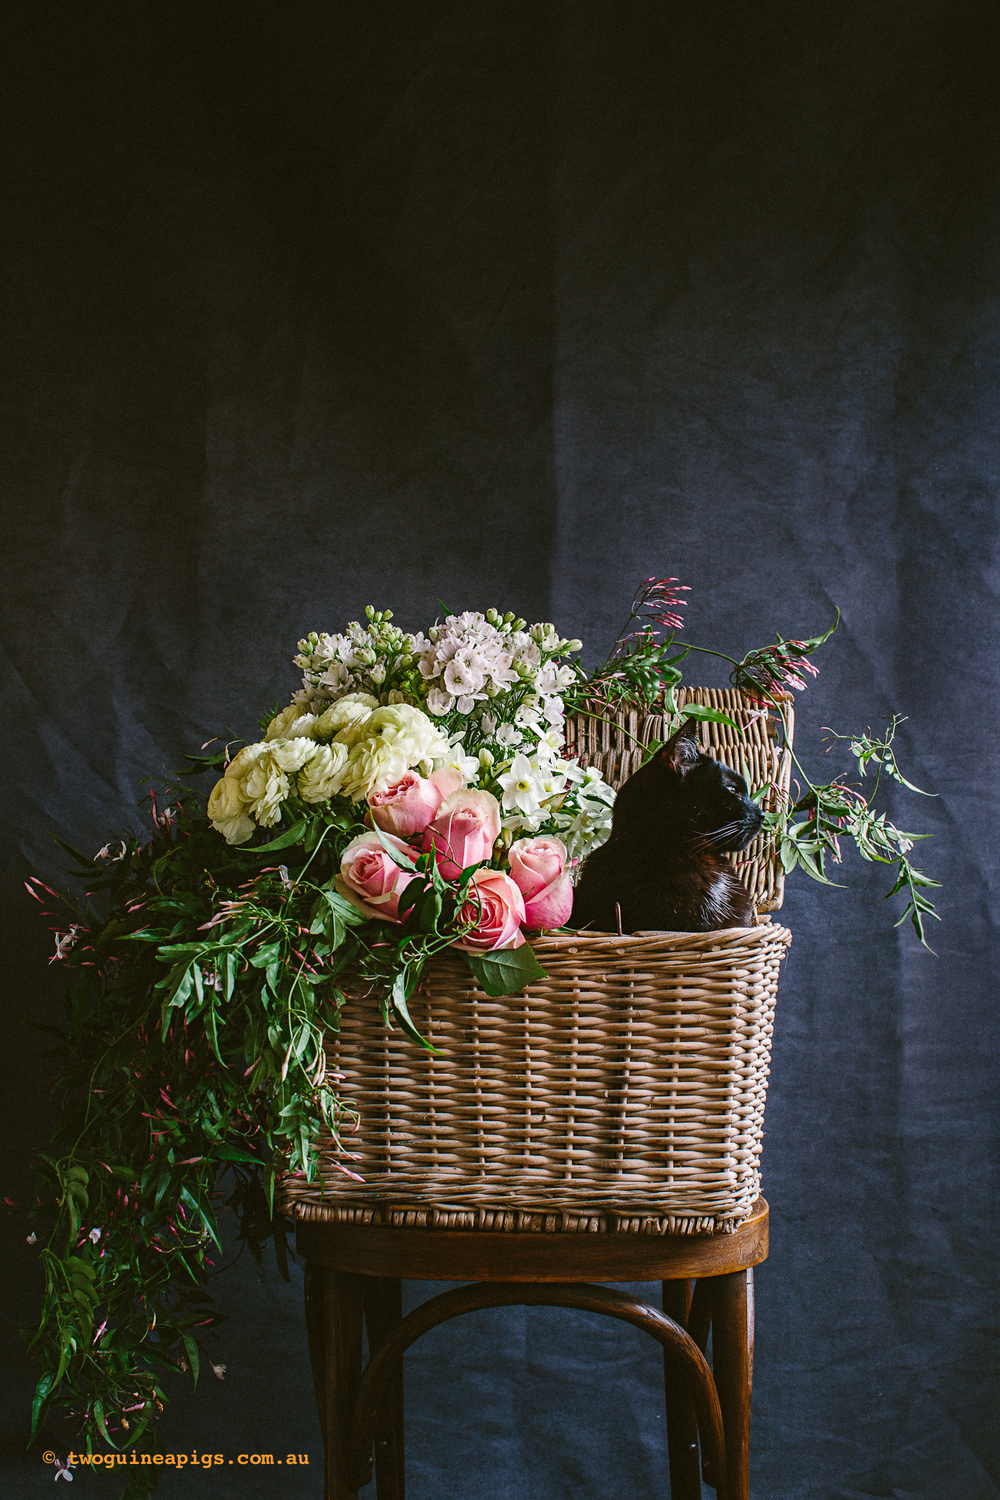 twoguineapigs_pet_photography_cats_and_flowers_series_ruby_slipper_florist